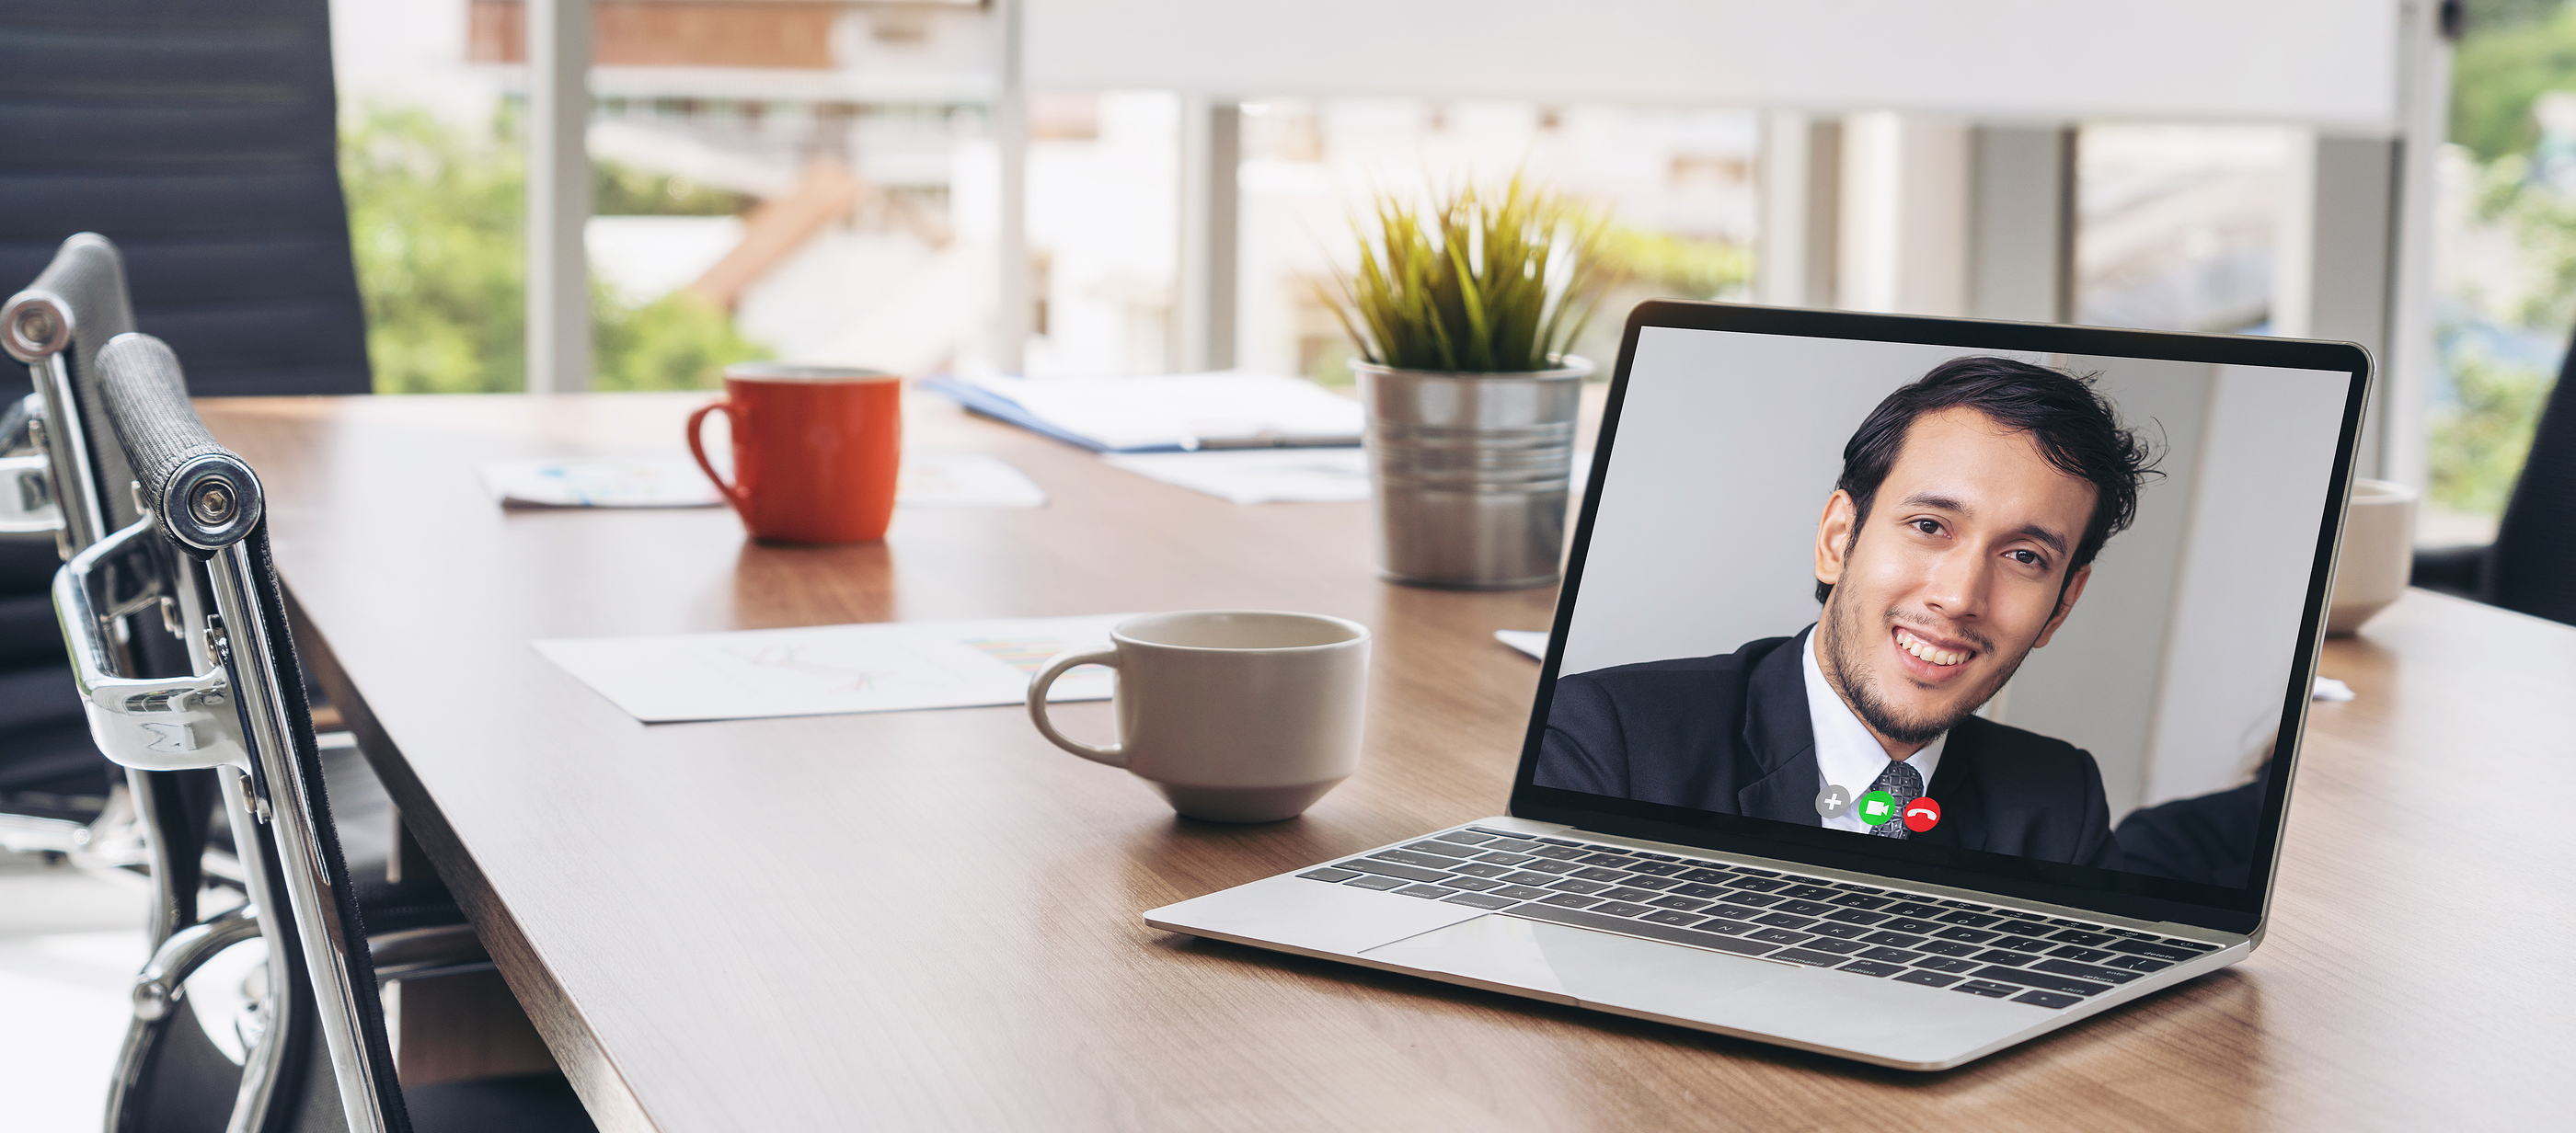 Manufacturers and engineers in a virtual meeting